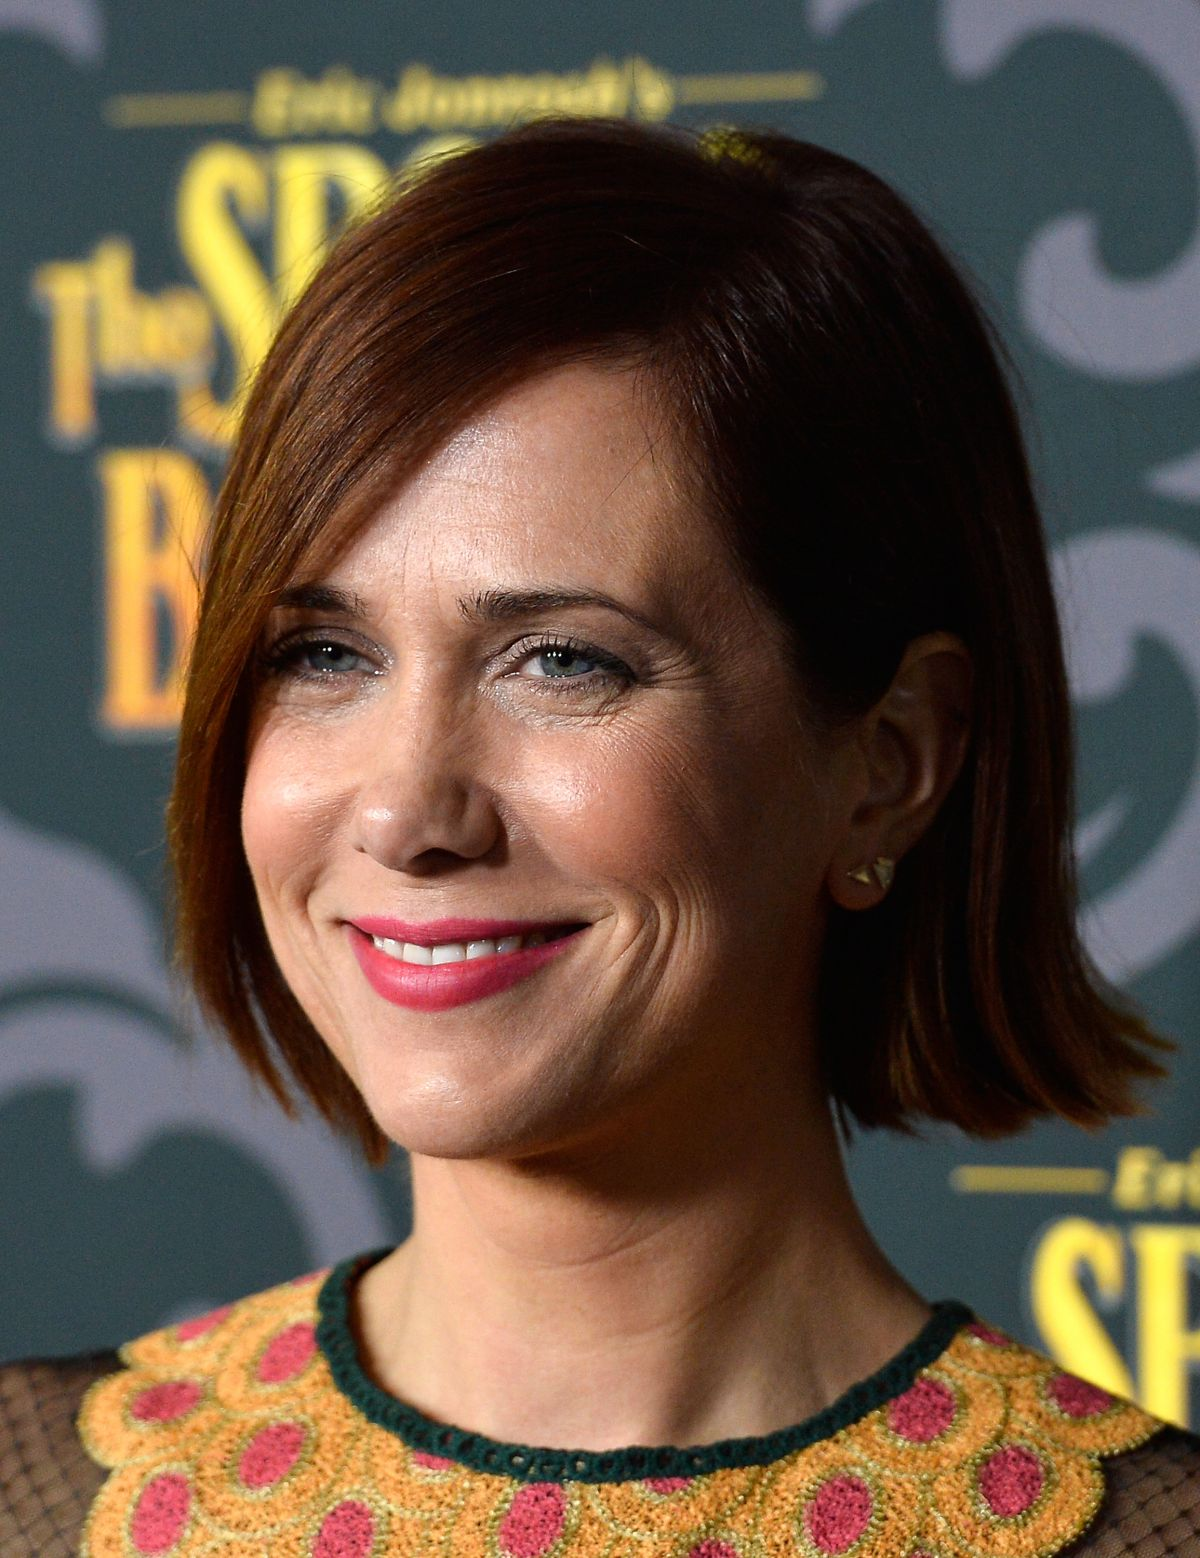 KRISTEN WIIG at The Spoils of Babylon Premiere in Los Angeles